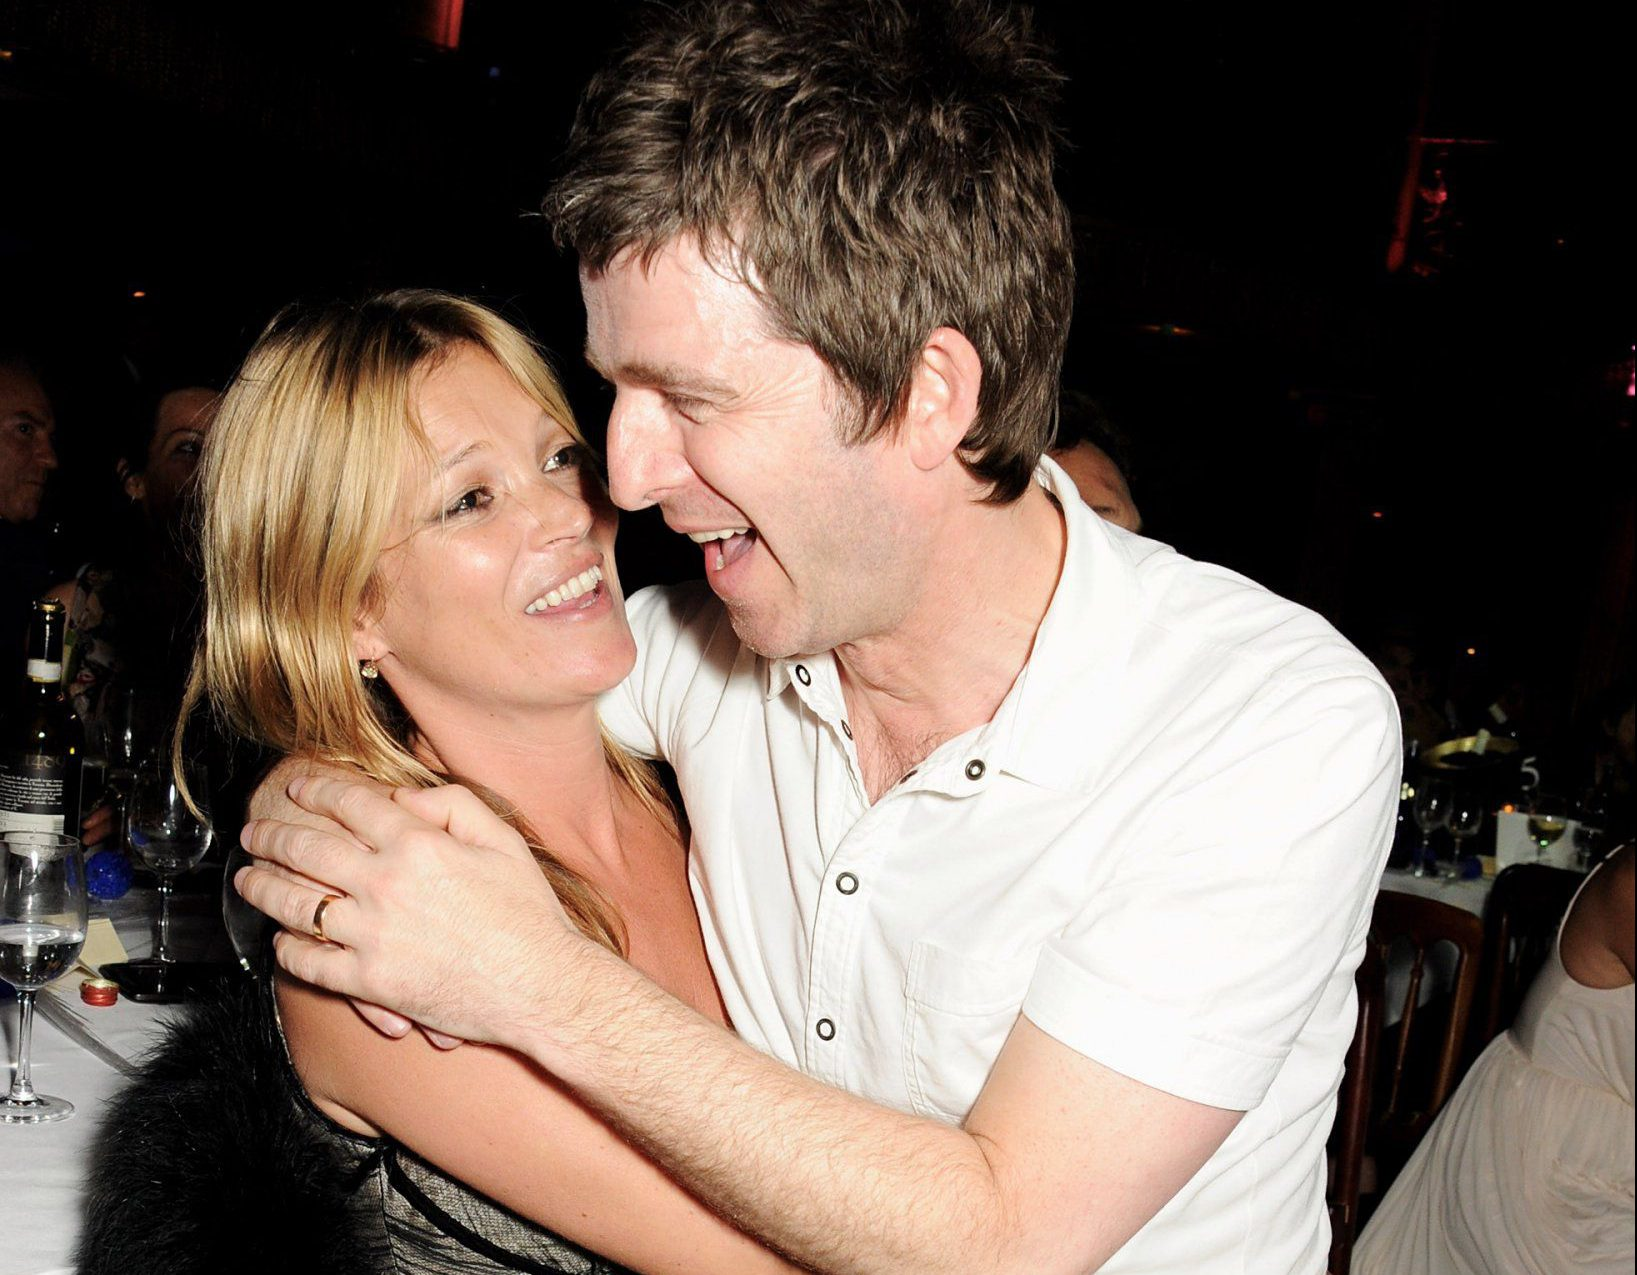 Kate Moss is going to regret admitting she still wears a present Noel Gallagher gave her way back in 1992